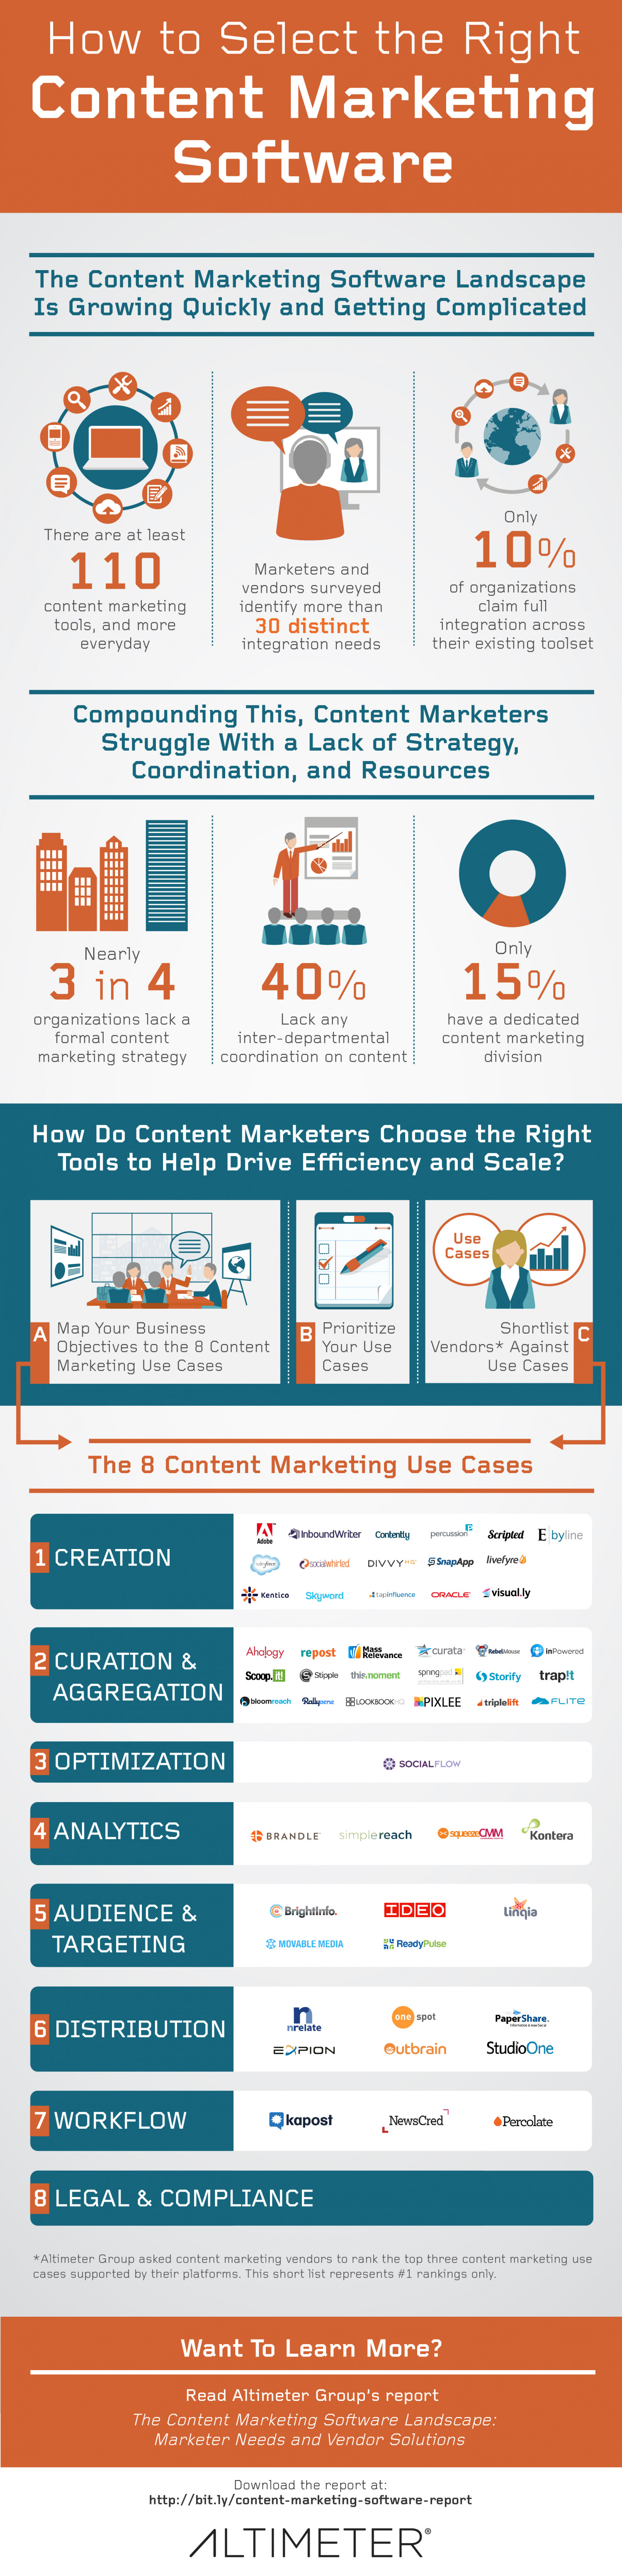 Selecting The Right Content Marketing Software Infographic